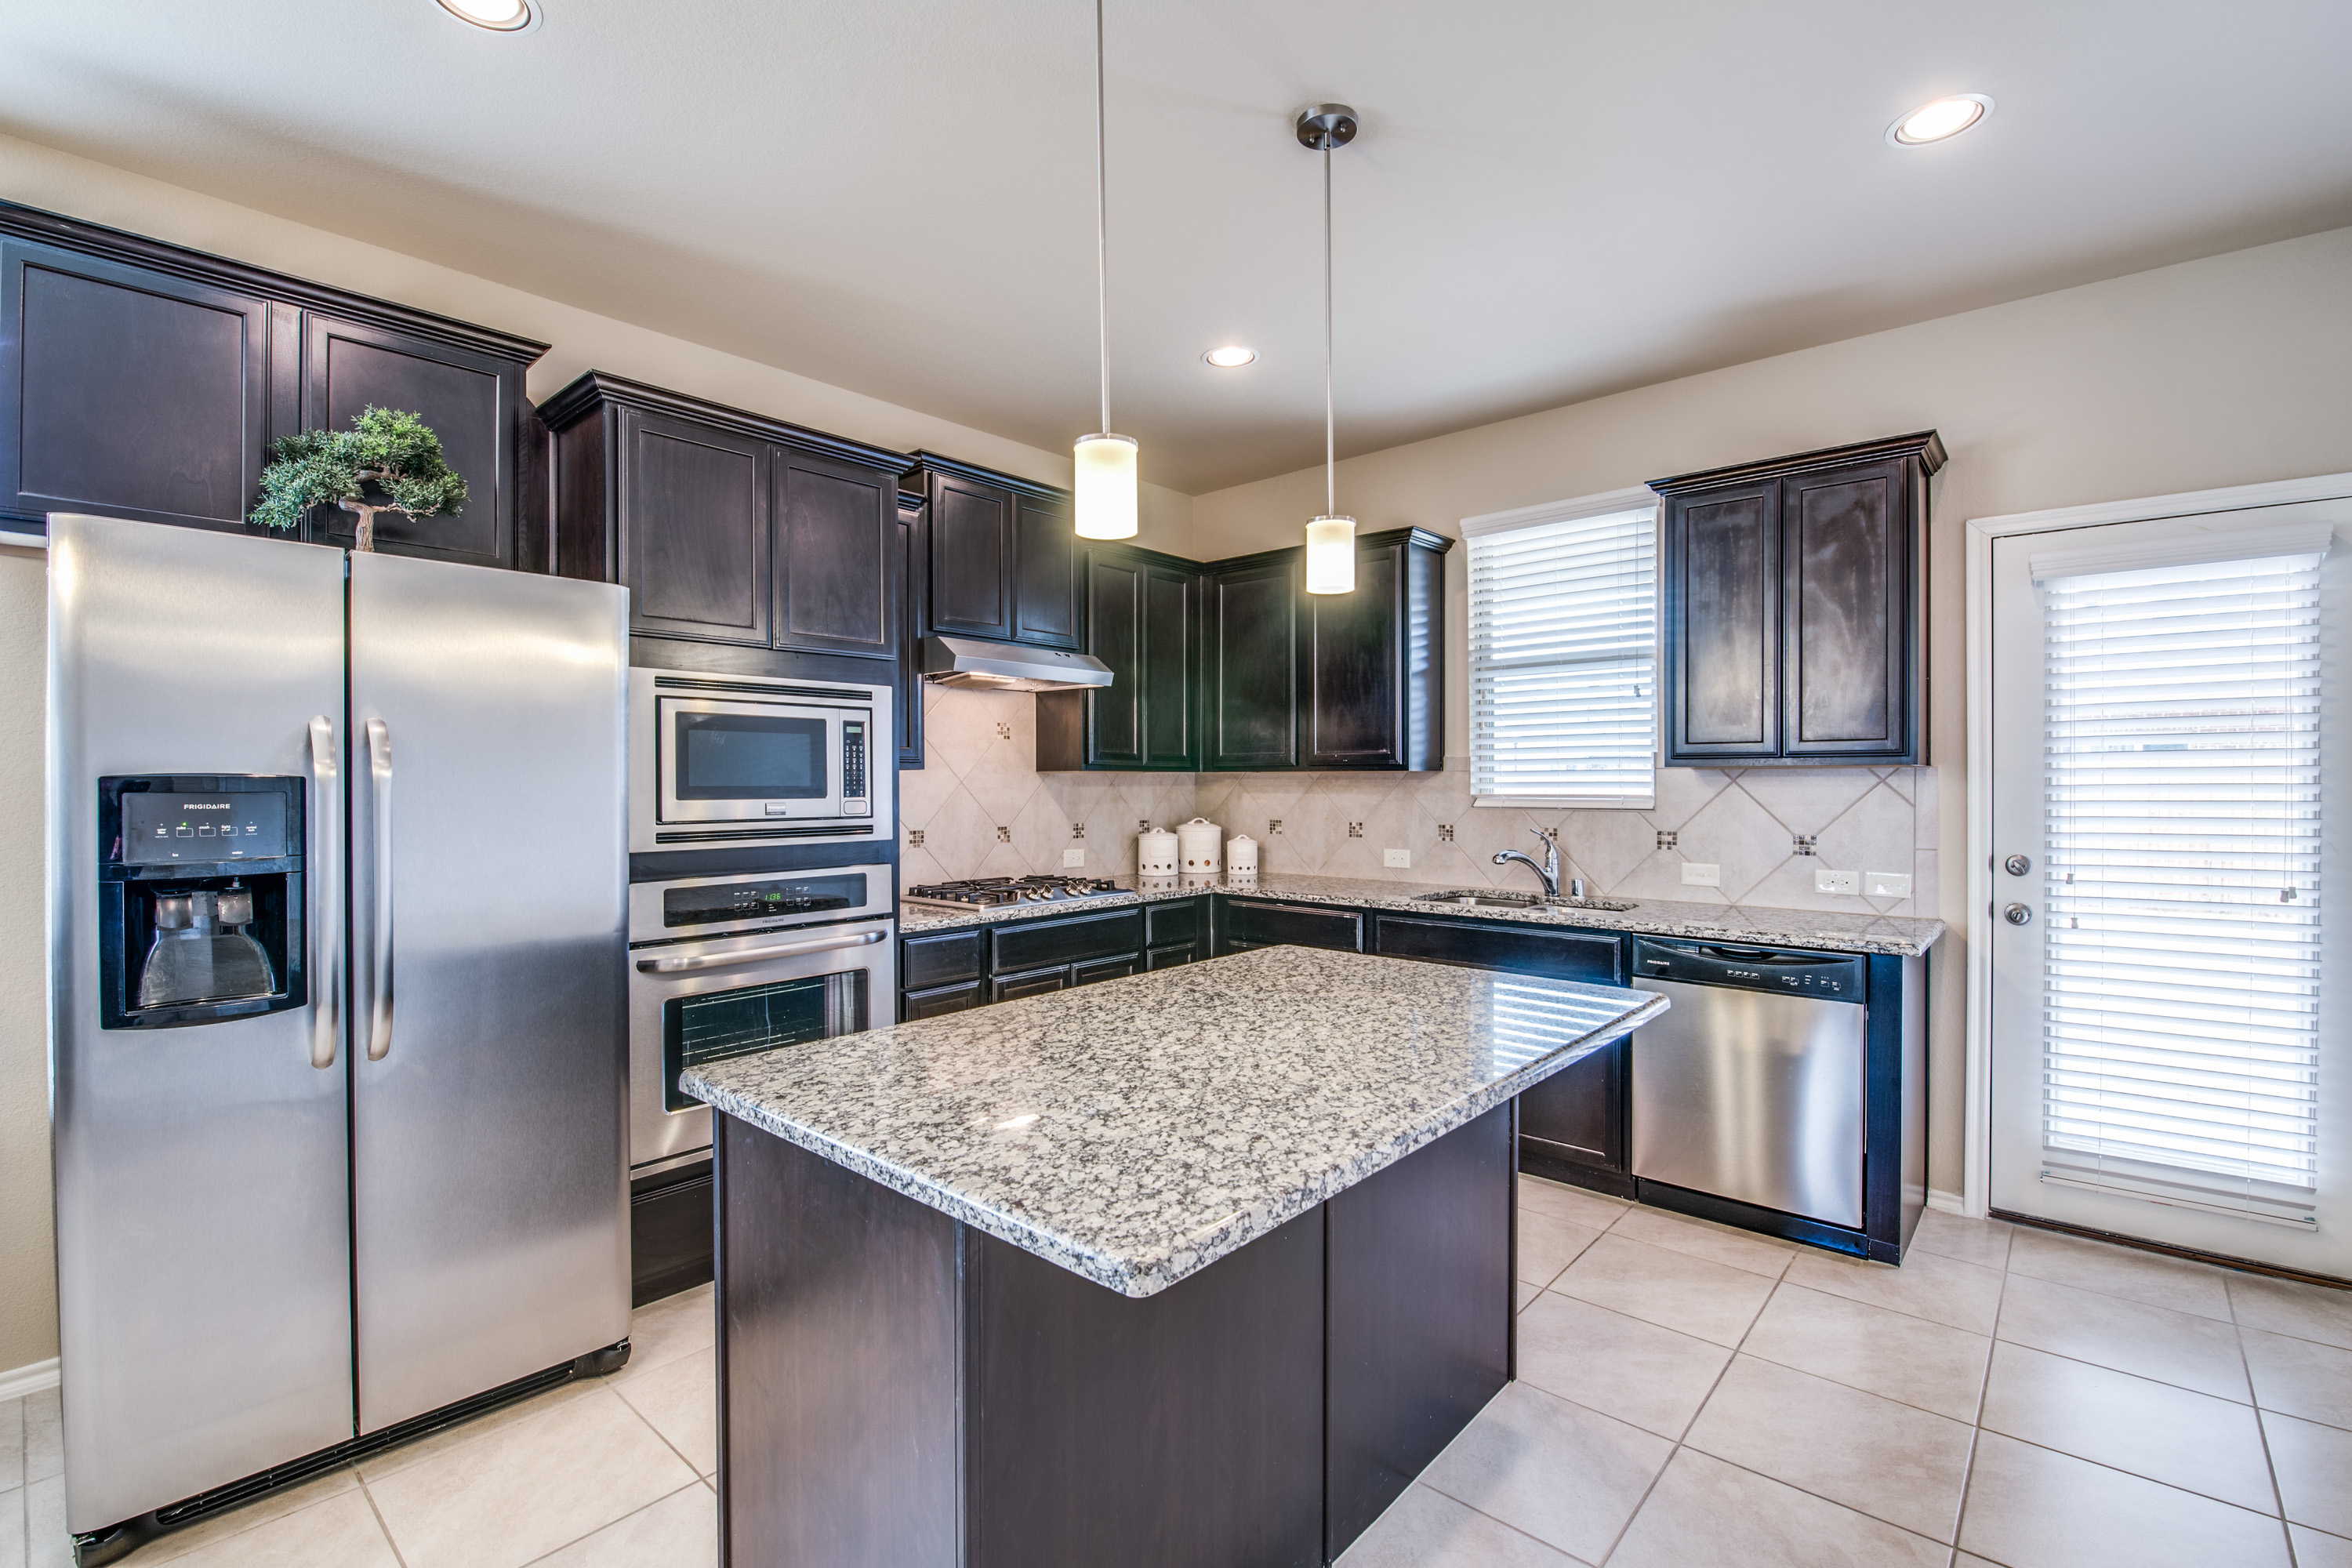 Gorgeous 4 Bedroom Two Bathroom One Story Home Features A Huge Kitchen With Island Generous Granite Counter Tops Walk In Pantry And Stainless Steel